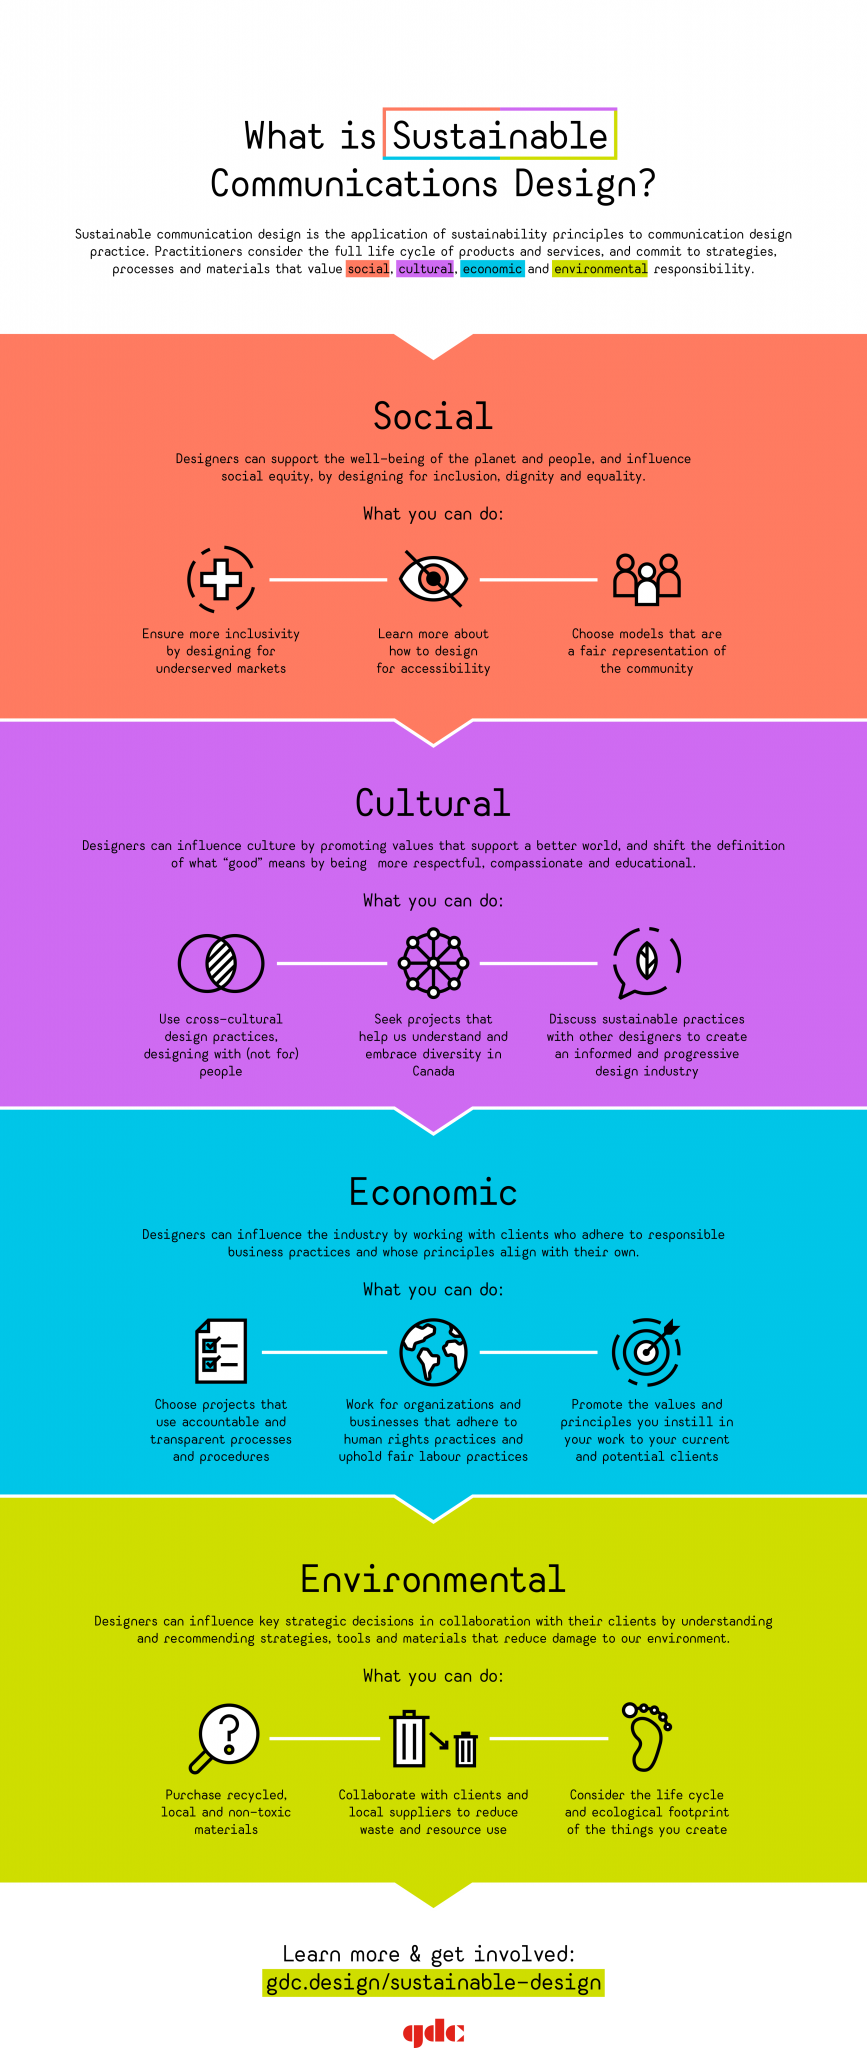 Sustainable communications design infographic showing different areas designers can create a positive impact.